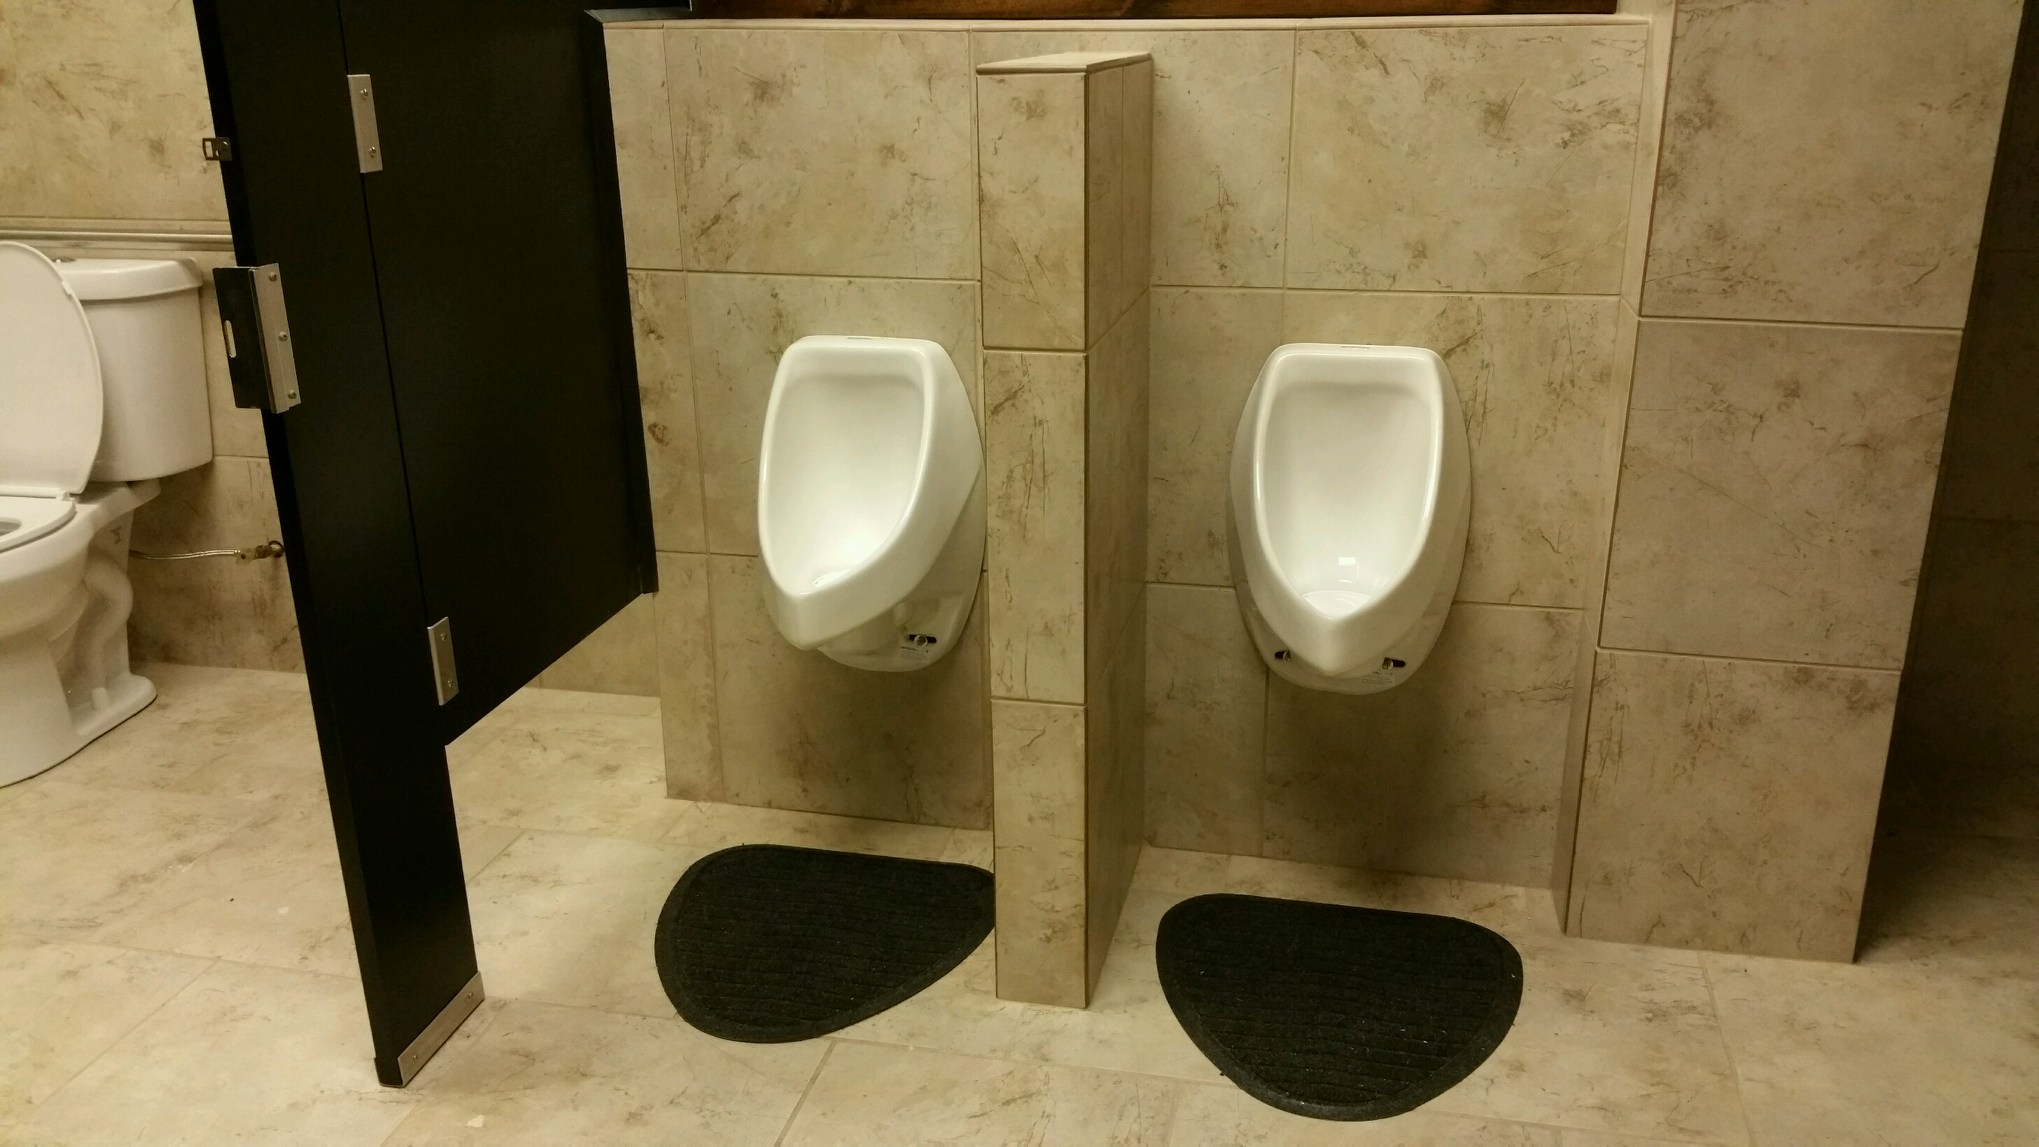 Trying to save water? Go Waterless with No-Flush Urinals.